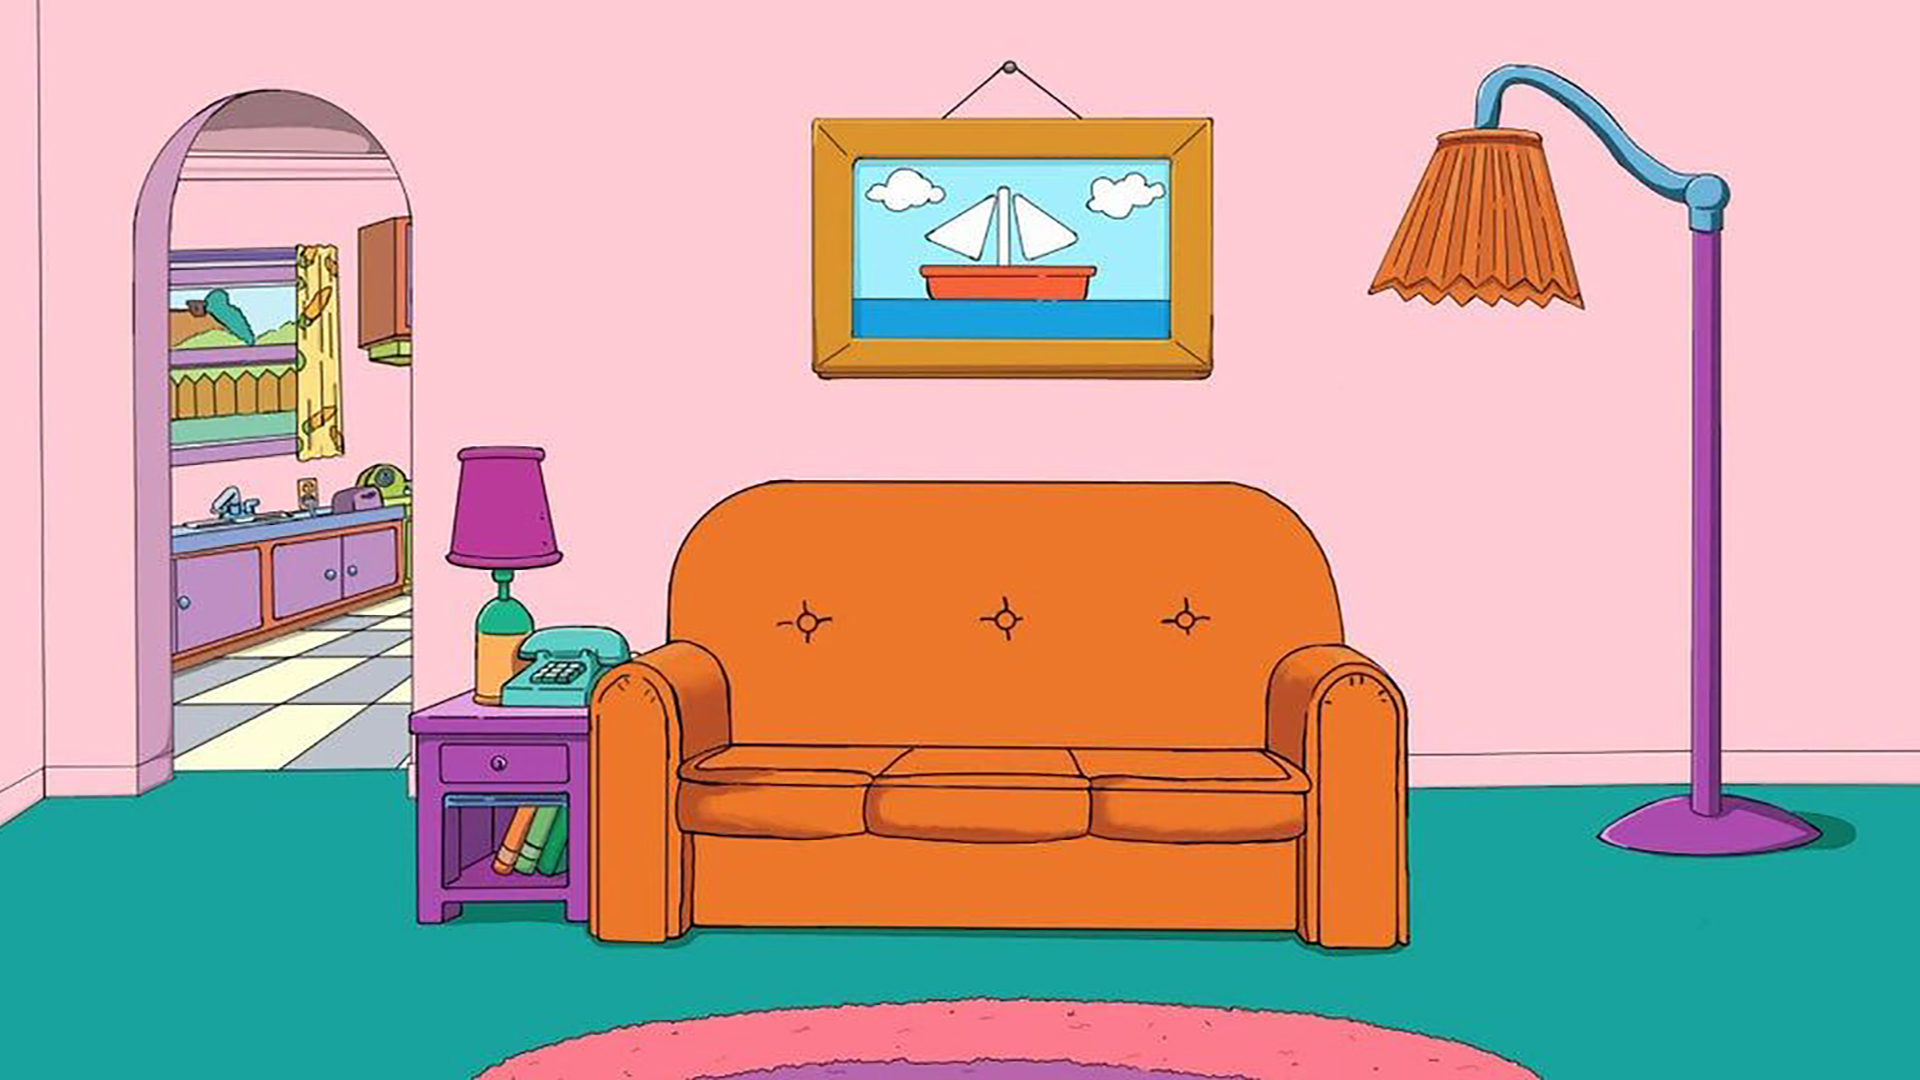 Simpsons couch. Virtual background to use on Zoom, Microsoft Teams, Skype, Google Meet, WebEx or any other compatible app.